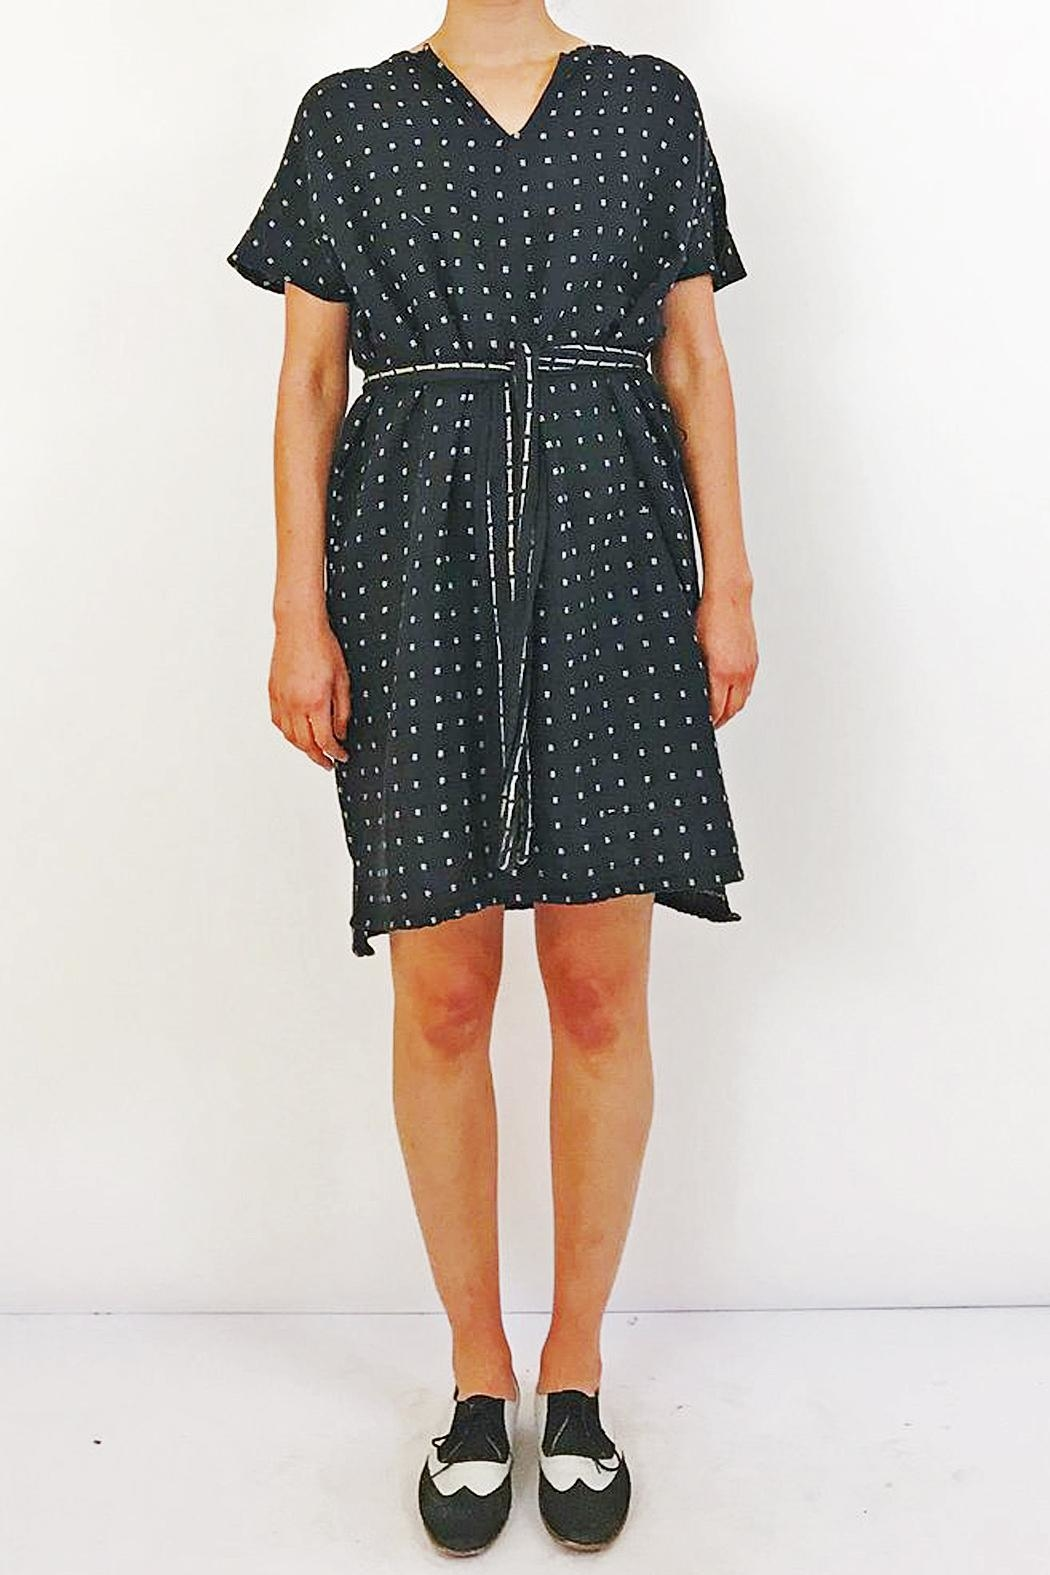 Ace & Jig Ojai Dress - Main Image